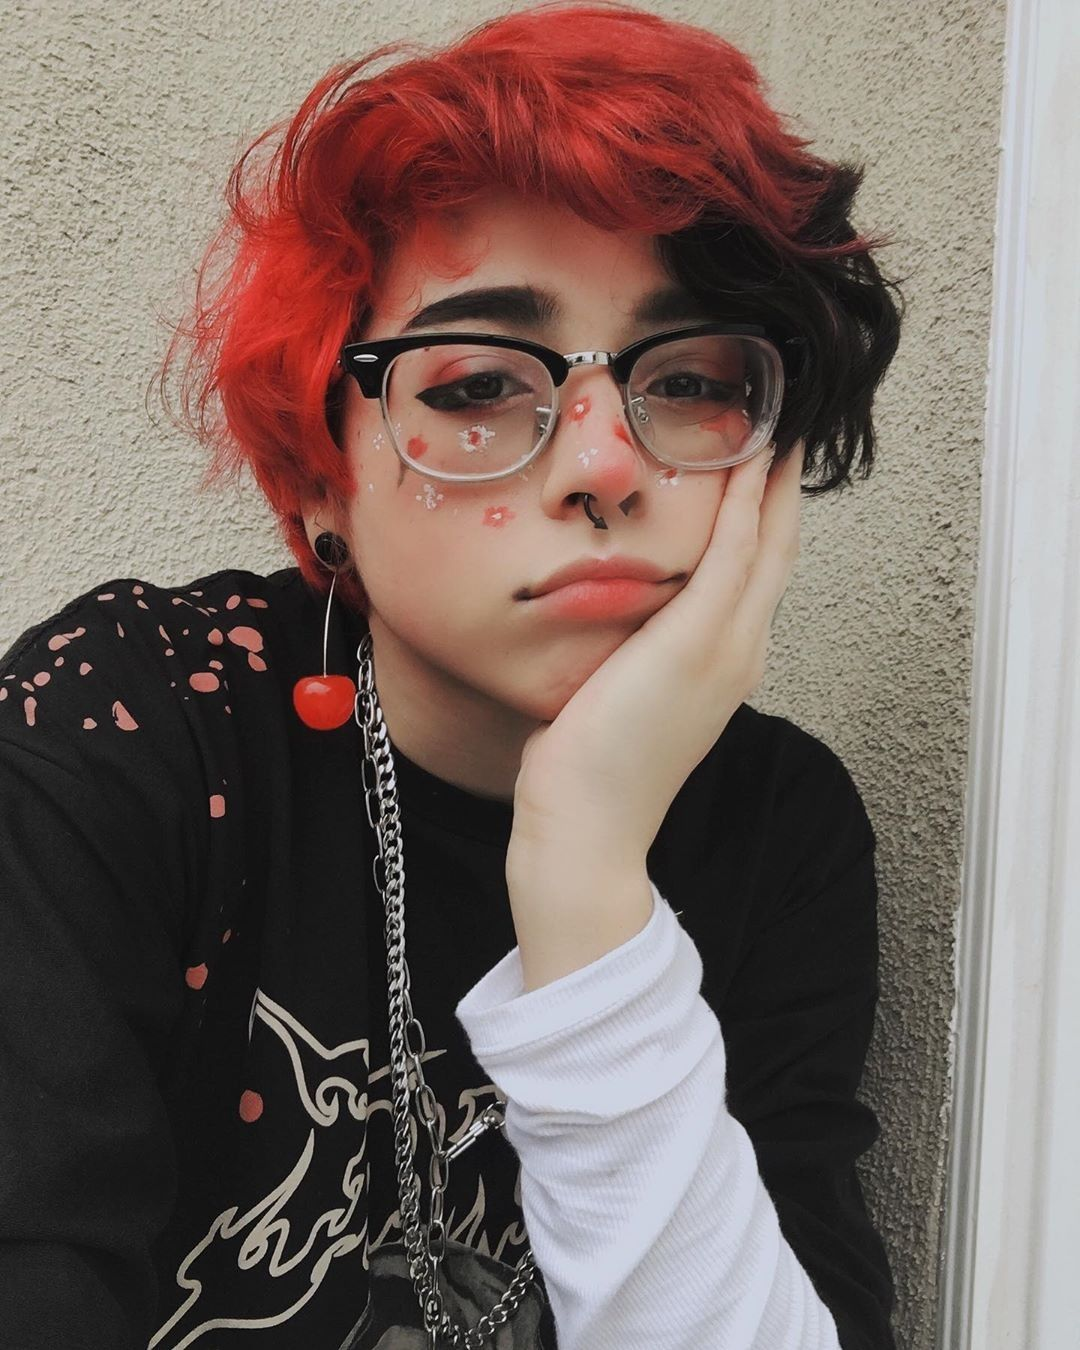 Pin By Soap On Kaiisyourhomie In 2020 Split Dyed Hair Emo Boy Hair Cute Hairstyles For Short Hair